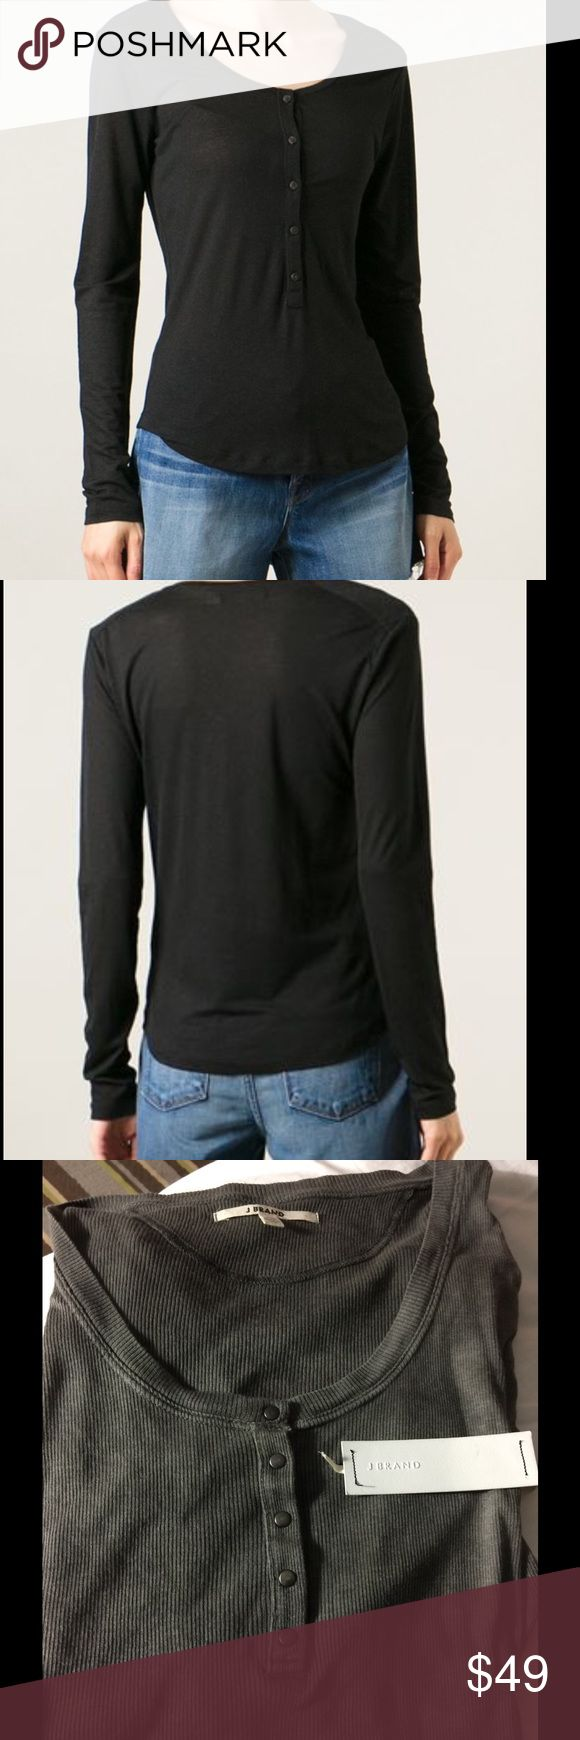 J Brand ribbed henley top charcoal nwt Charcoal ribbed henley top nwt J Brand Tops Tees - Long Sleeve